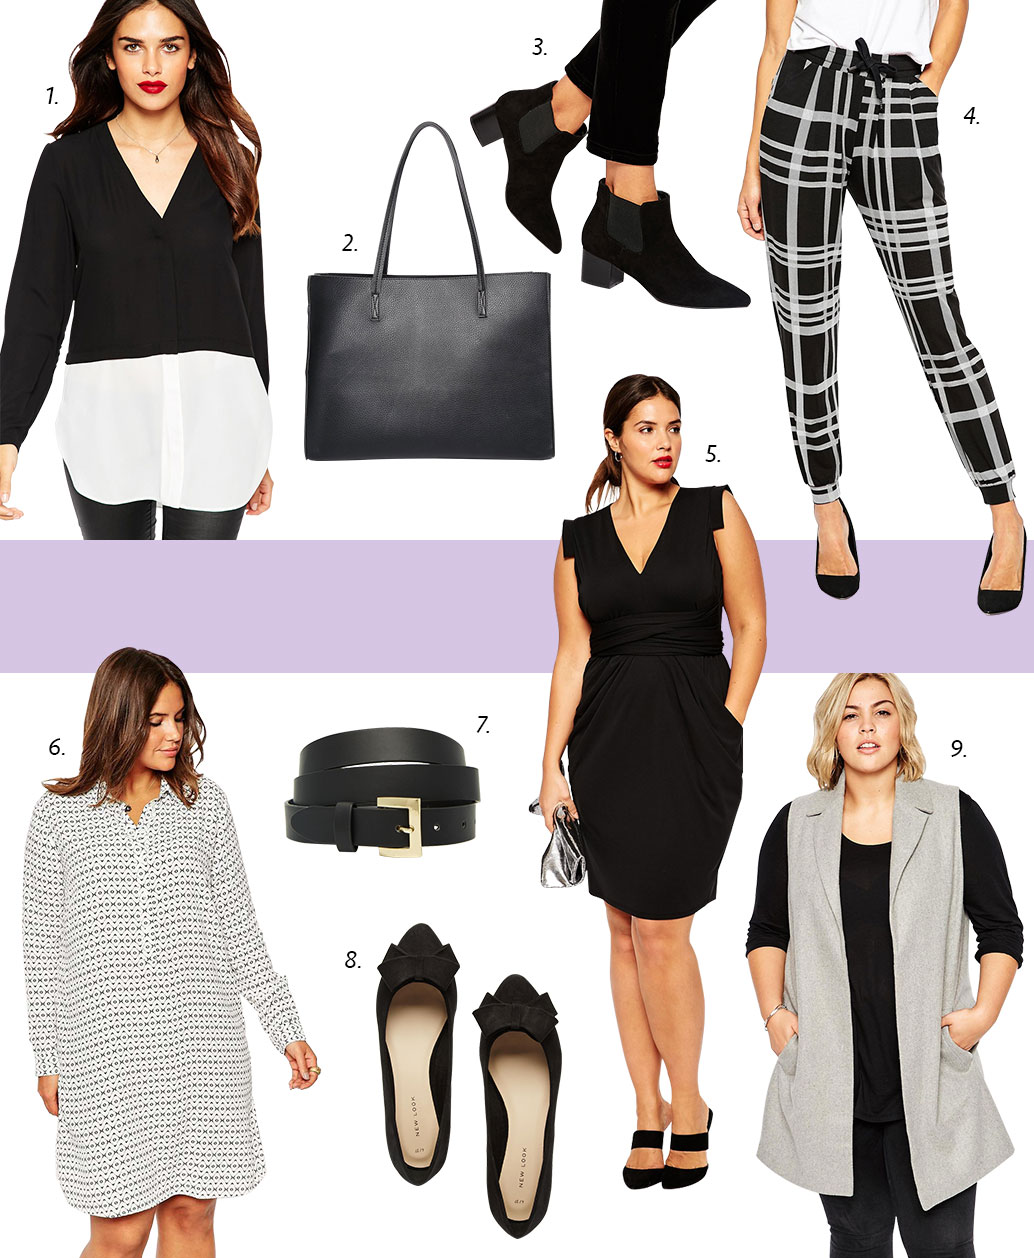 Workwear Wish list | EmmaLouisa.com